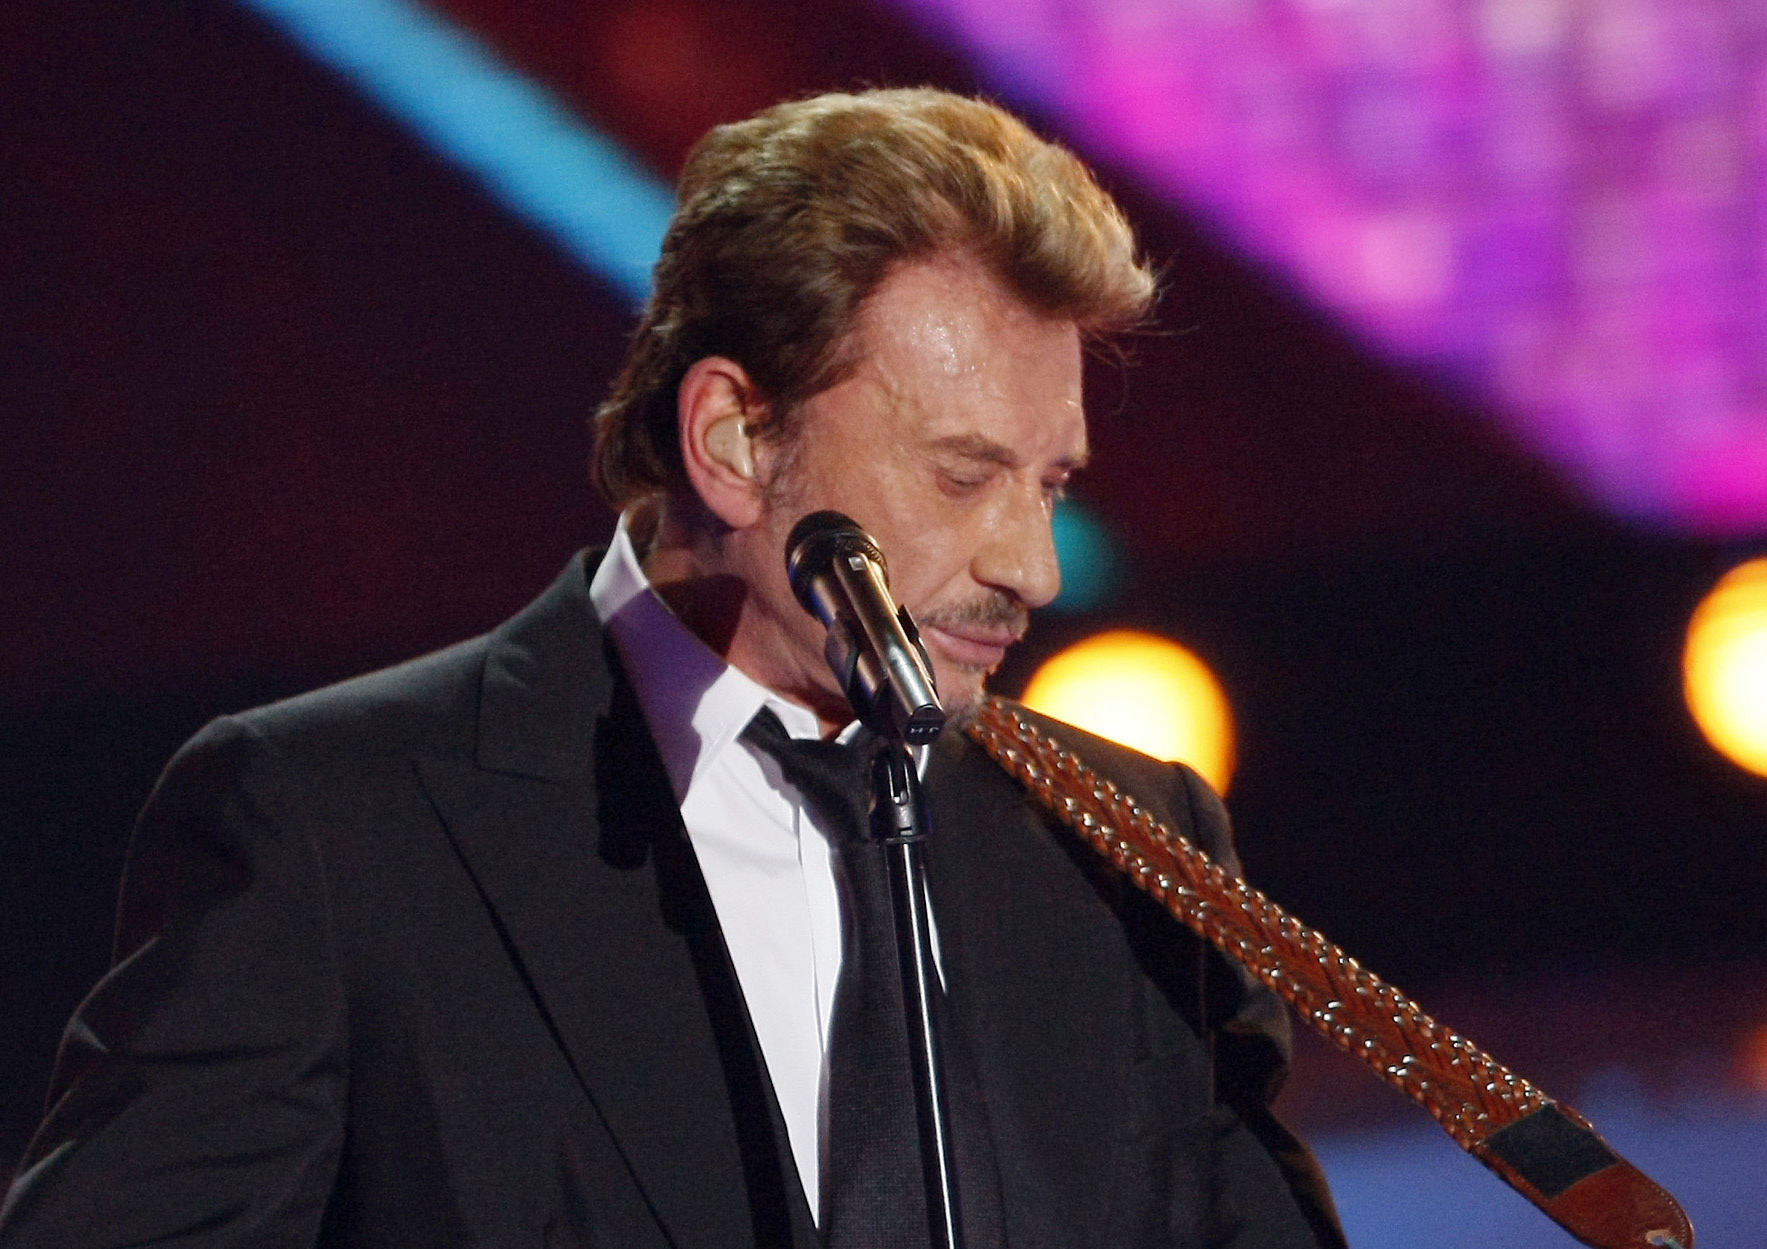 Hallyday had repeated health scares in recent years